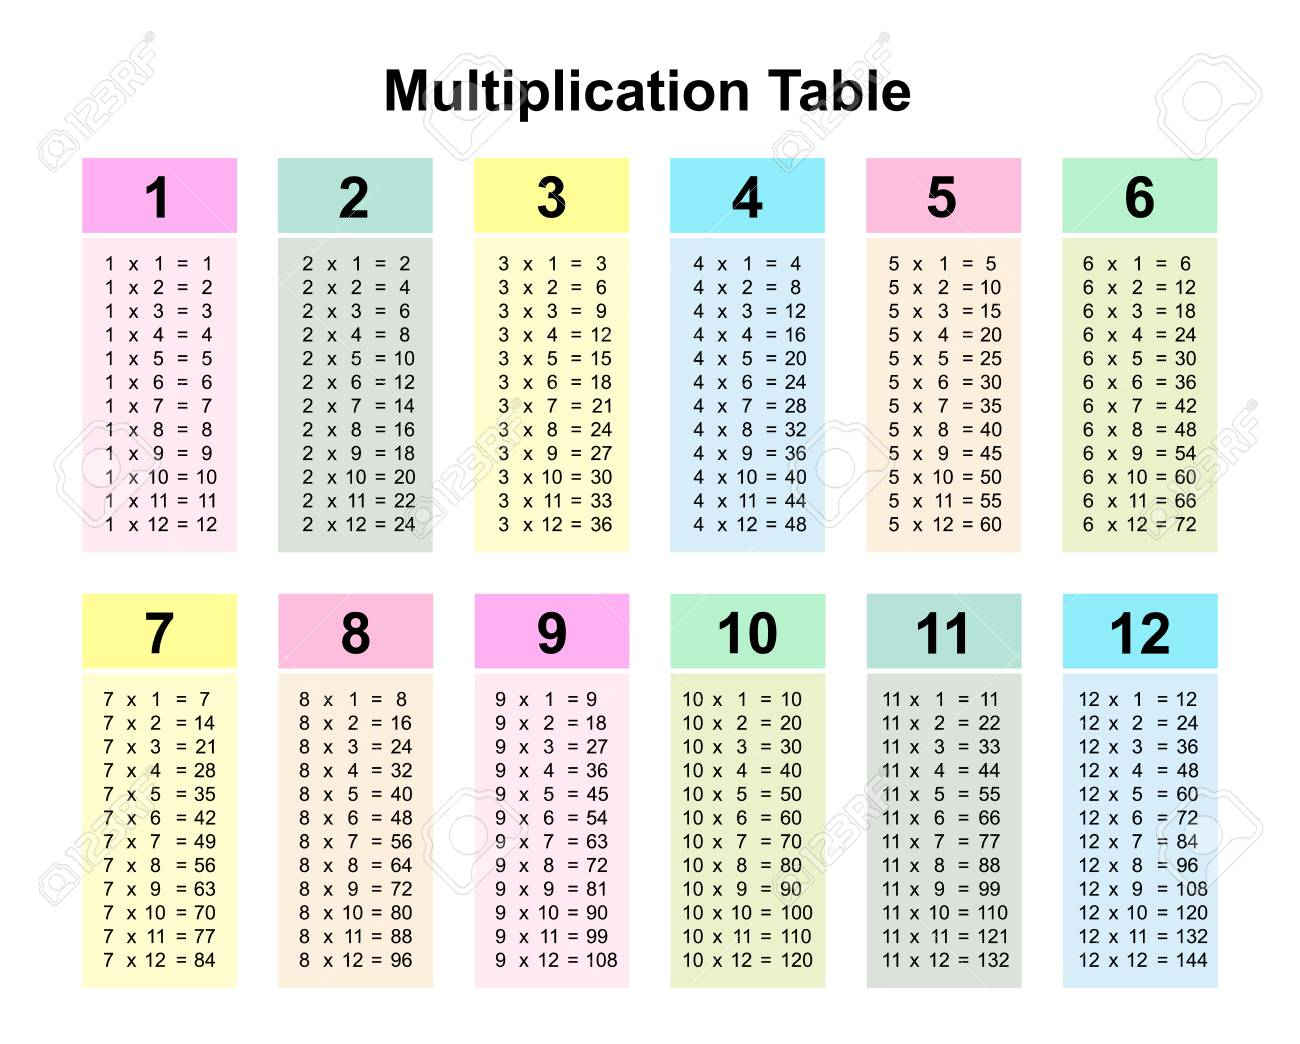 multiplication table chart or multiplication table printable vector illustration - 117690319